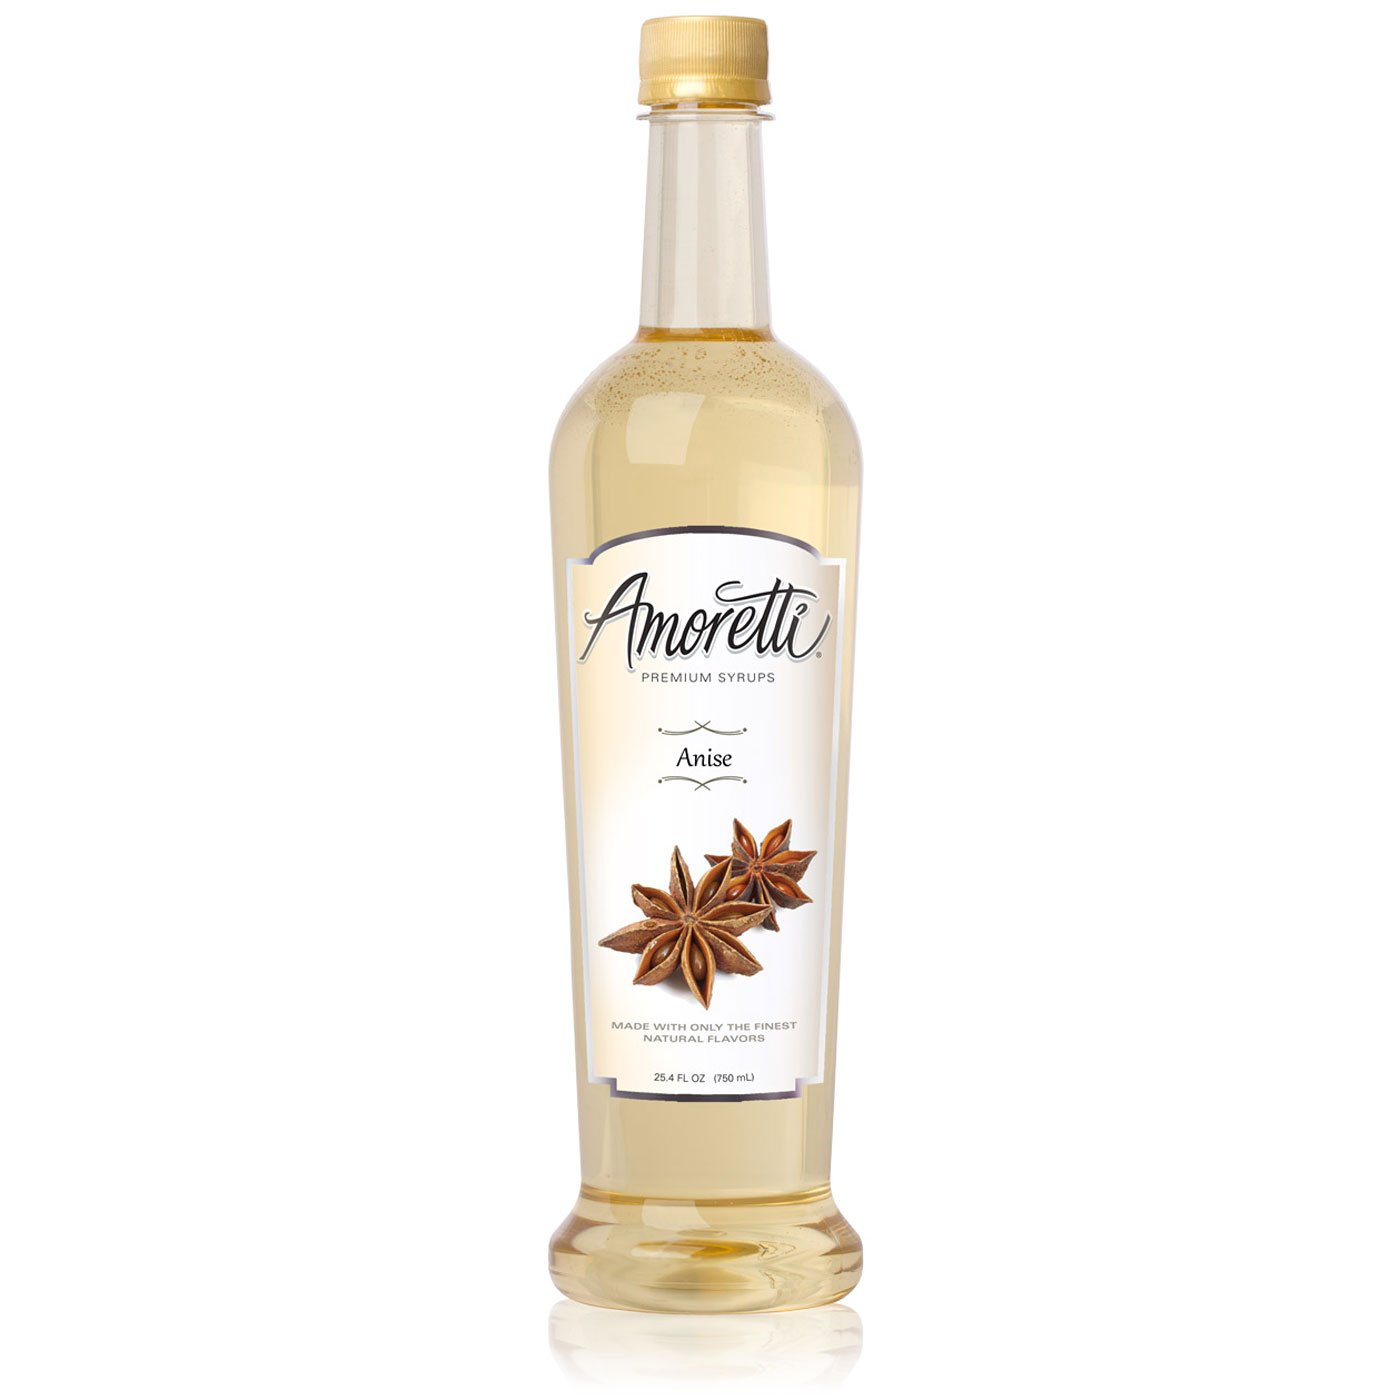 Amoretti Premium Syrup, Anise, 25.4 Ounce